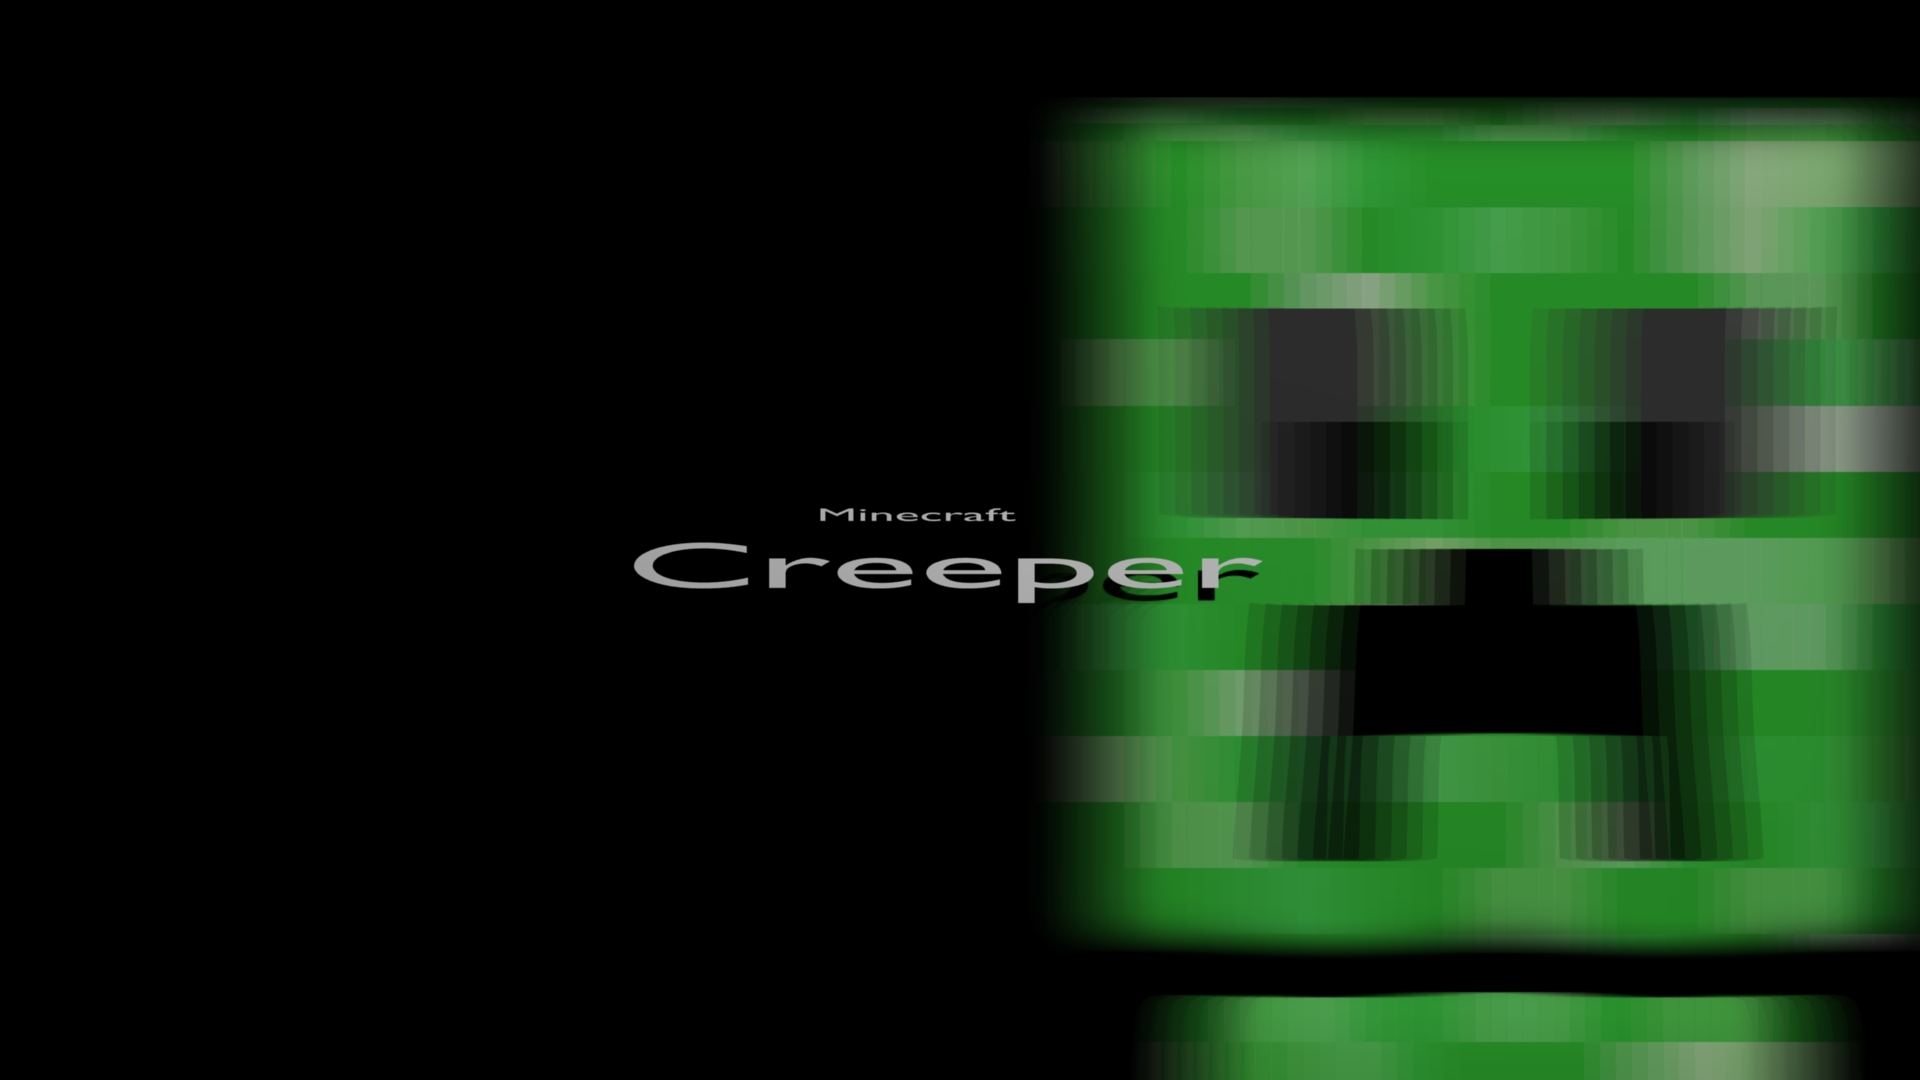 Minecraft Cool Wallpapers Creeper 1920x1080